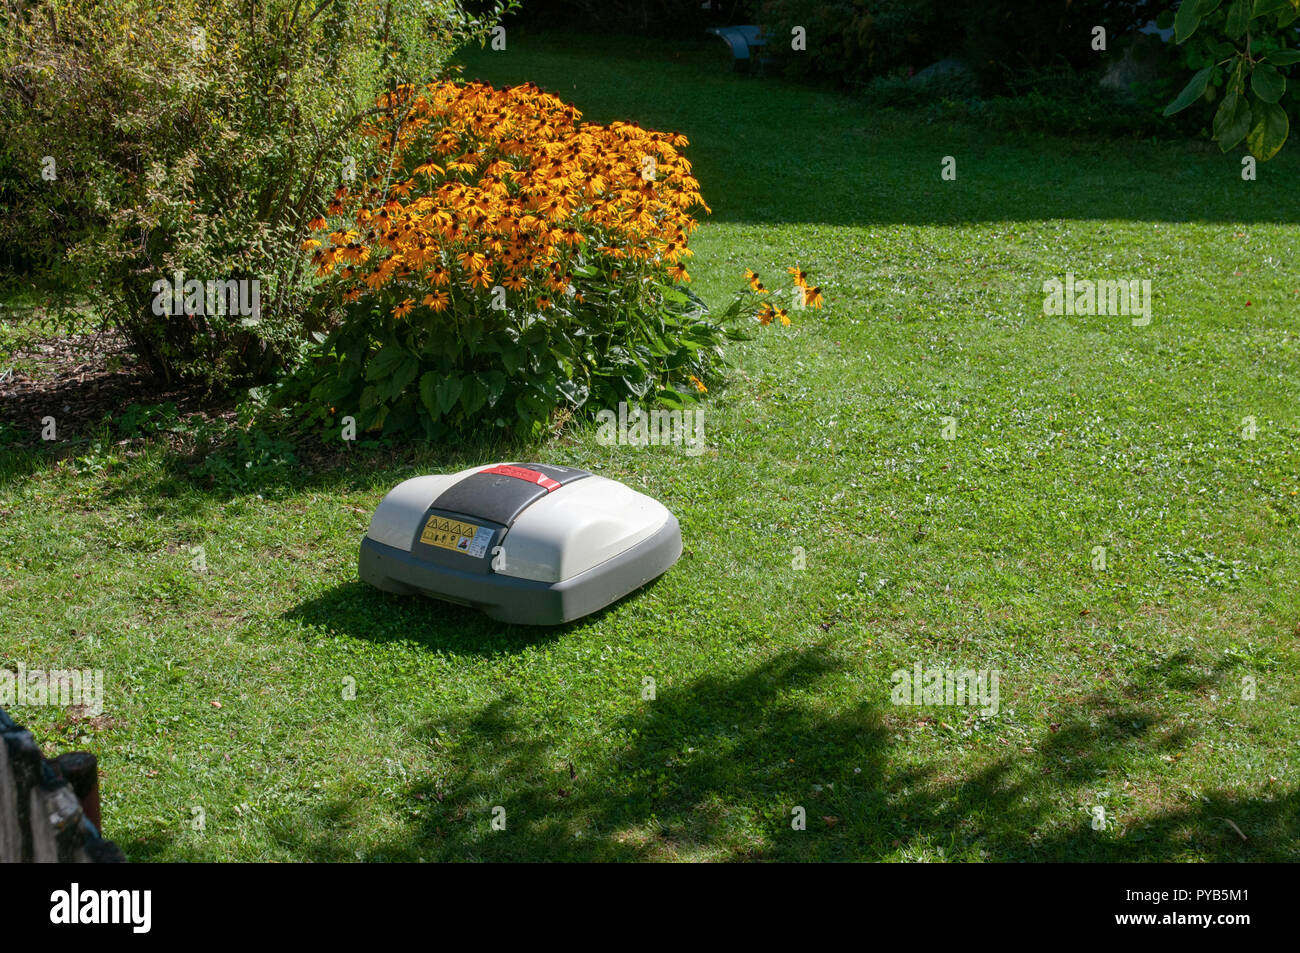 battery powered robotic lawn mower cutting grass Stock Photo